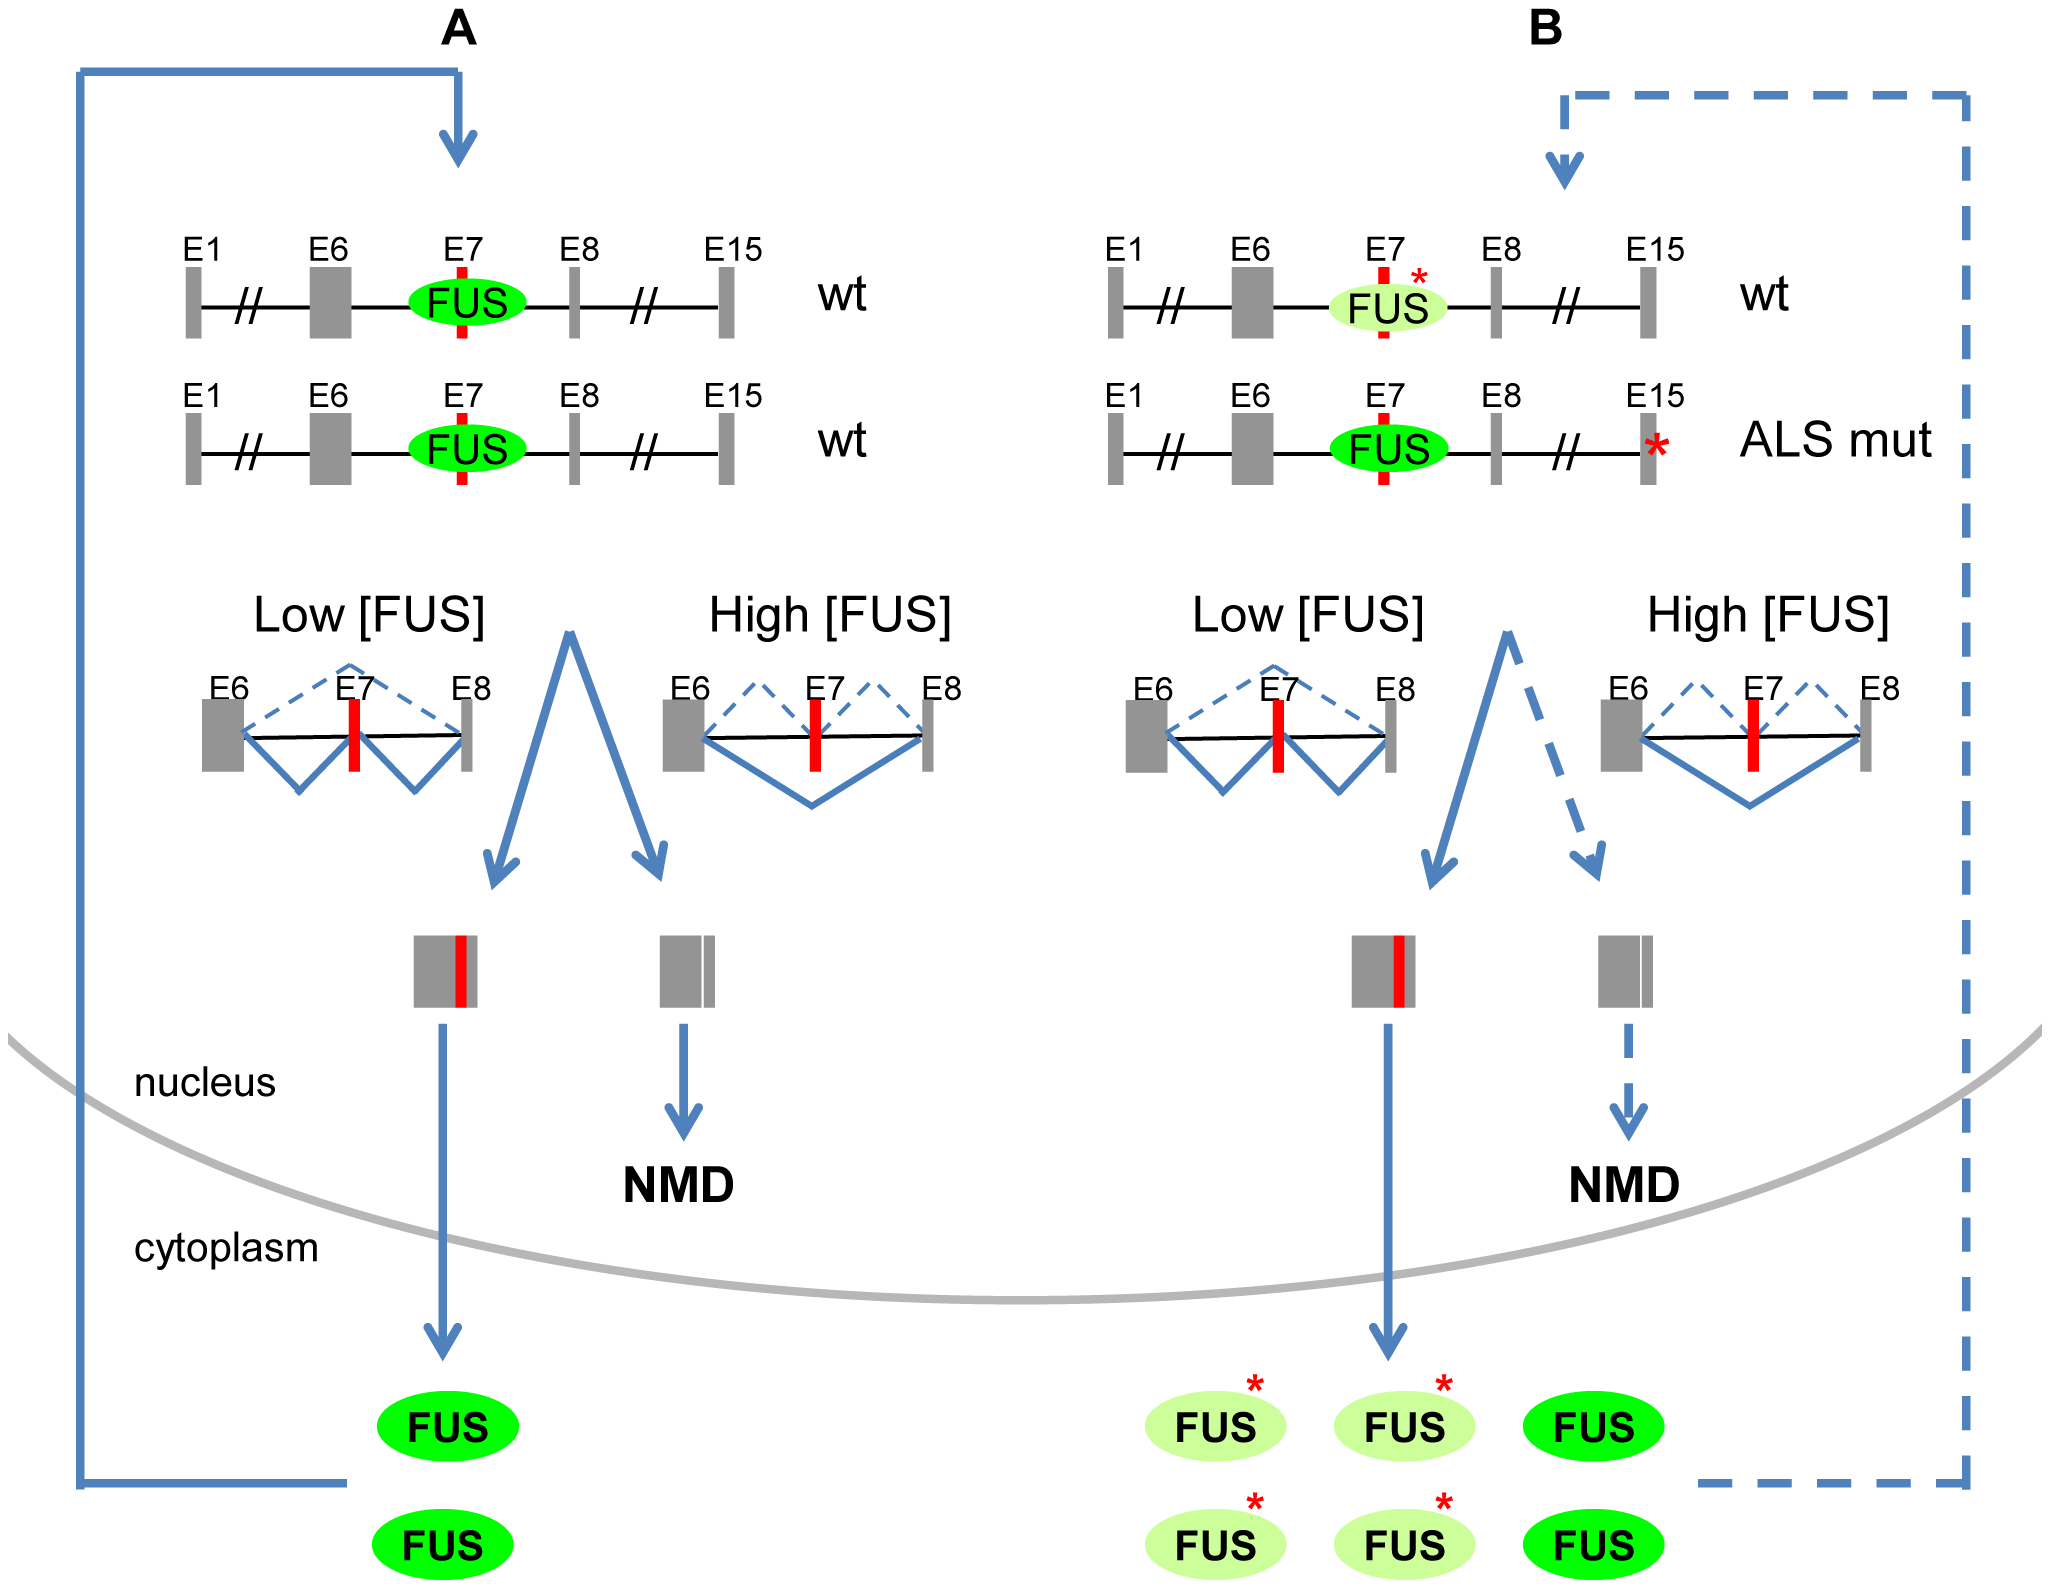 Proposed model of FUS autoregulation and its contribution to ALS pathogenesis.